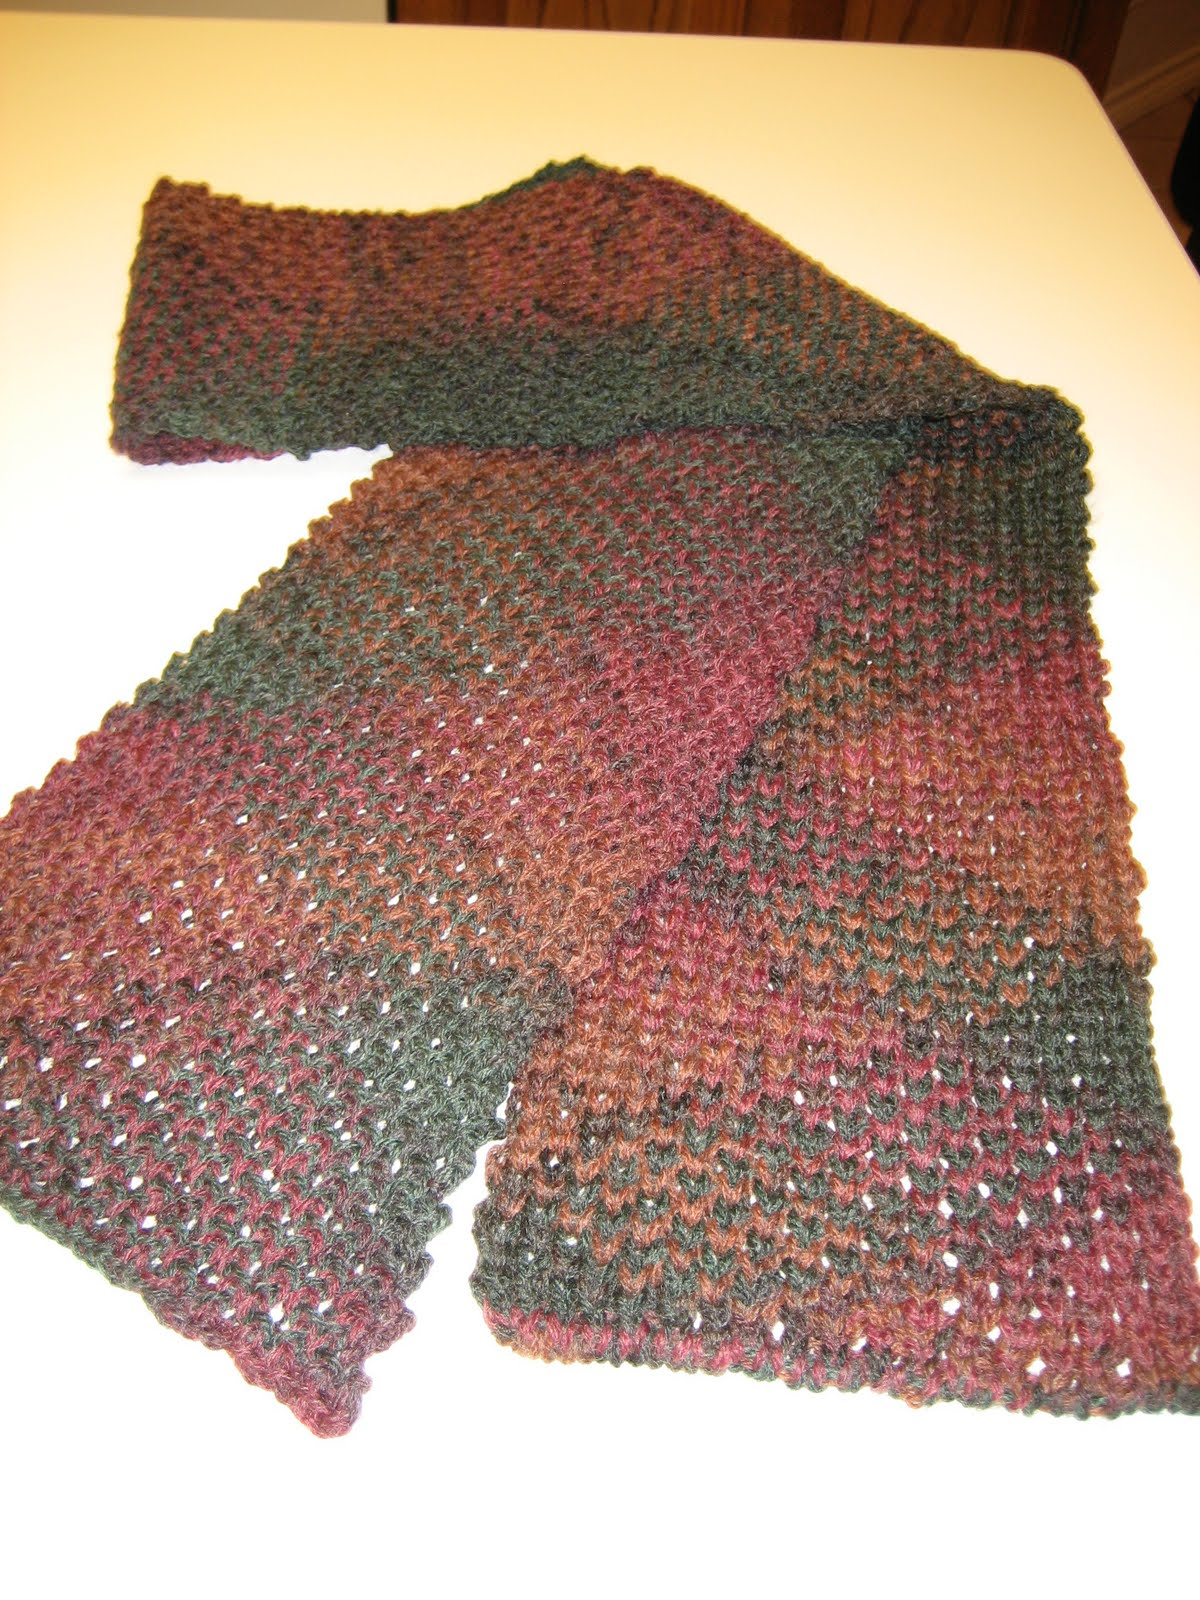 Knitting Machine Scarf Pattern : Diana natters on... about machine knitting: Honeycomb Ribbed Scarf